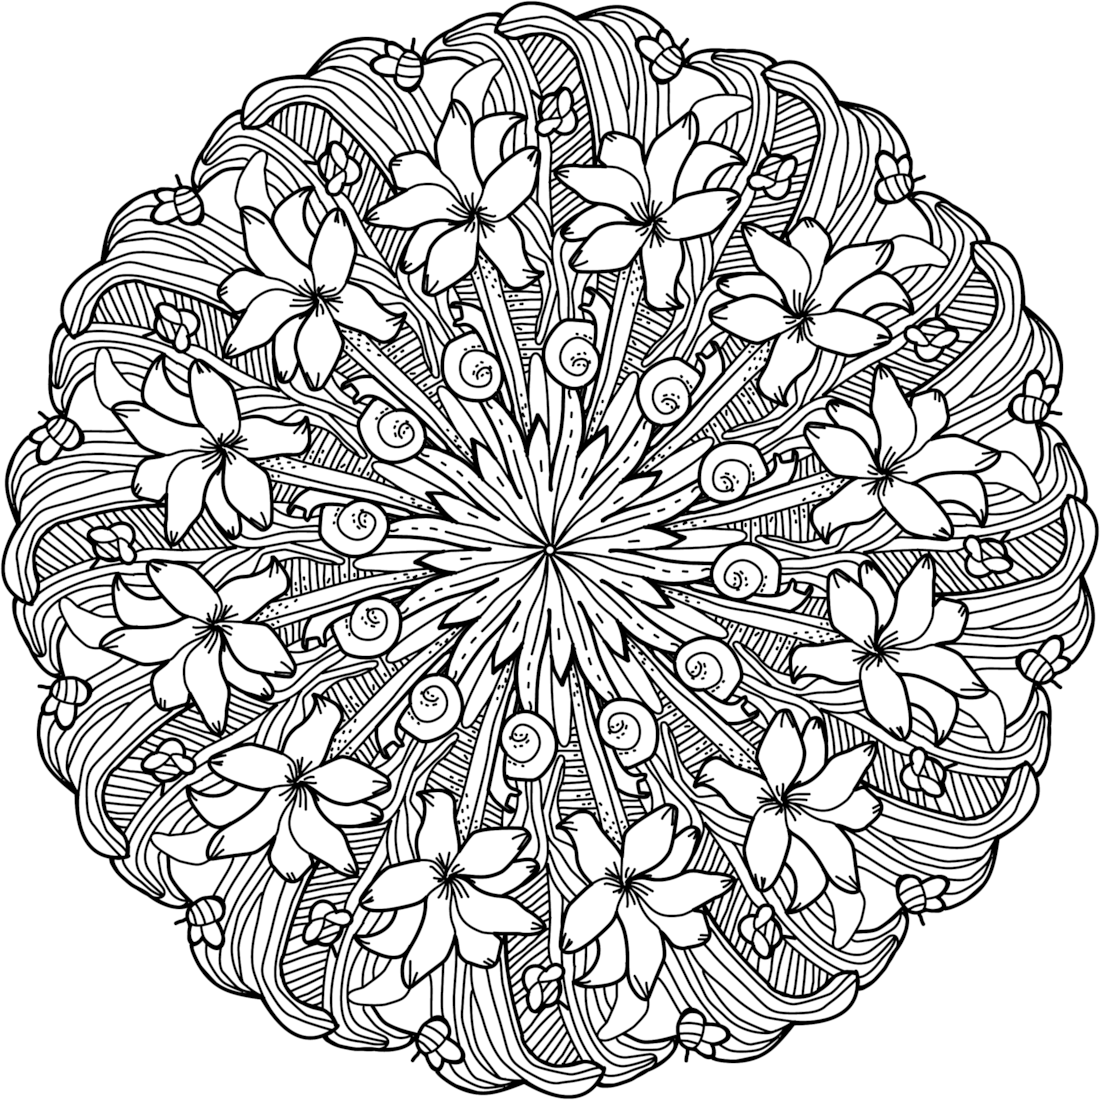 printable pictures to color for adults free printable abstract coloring pages for adults printable for adults color pictures to